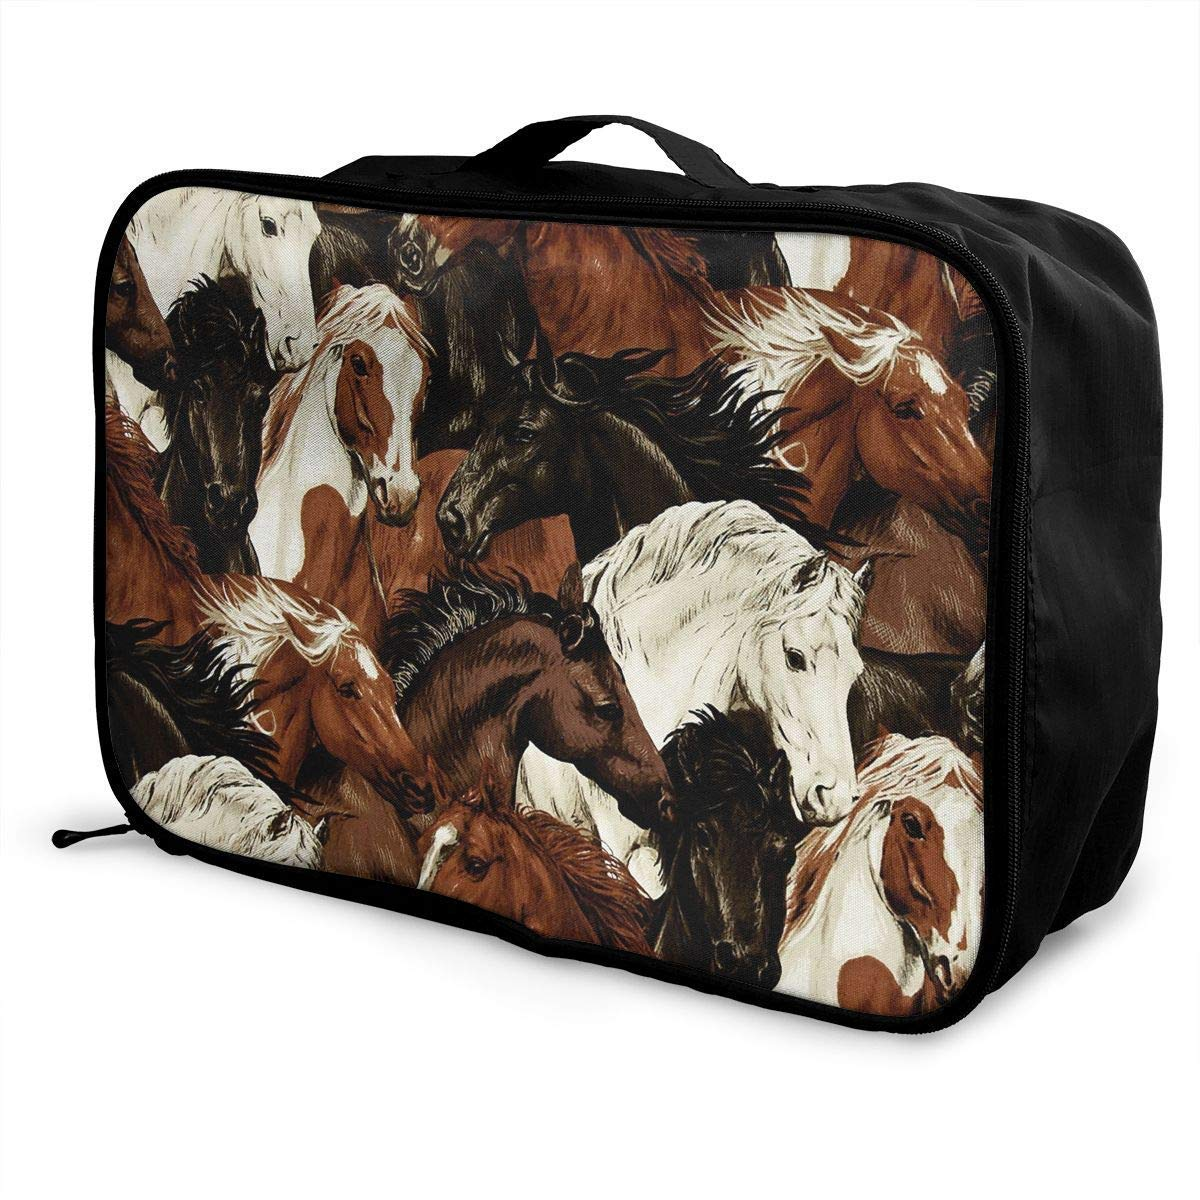 JTRVW Luggage Bags for Travel Portable Luggage Duffel Bag Brown White Horse Head Travel Bags Carry-on in Trolley Handle